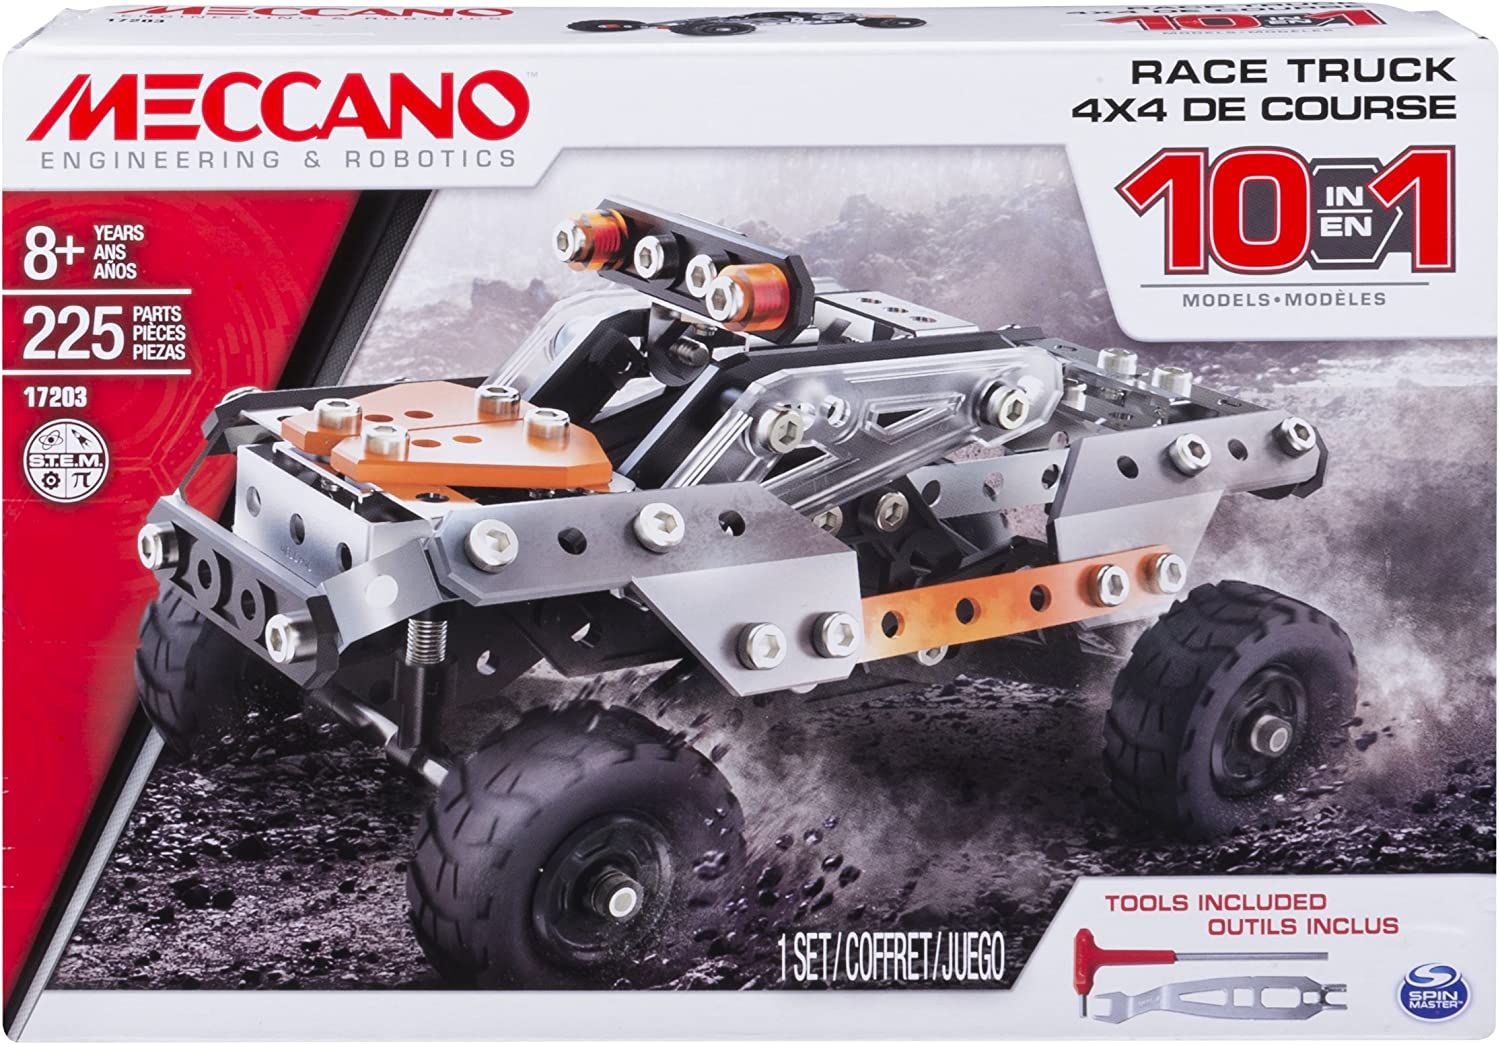 Erector by Meccano, 10 in 1 Model Race Truck Building Set, 225 Pieces, For Ages 8 and up, STEM Construction Education Toy